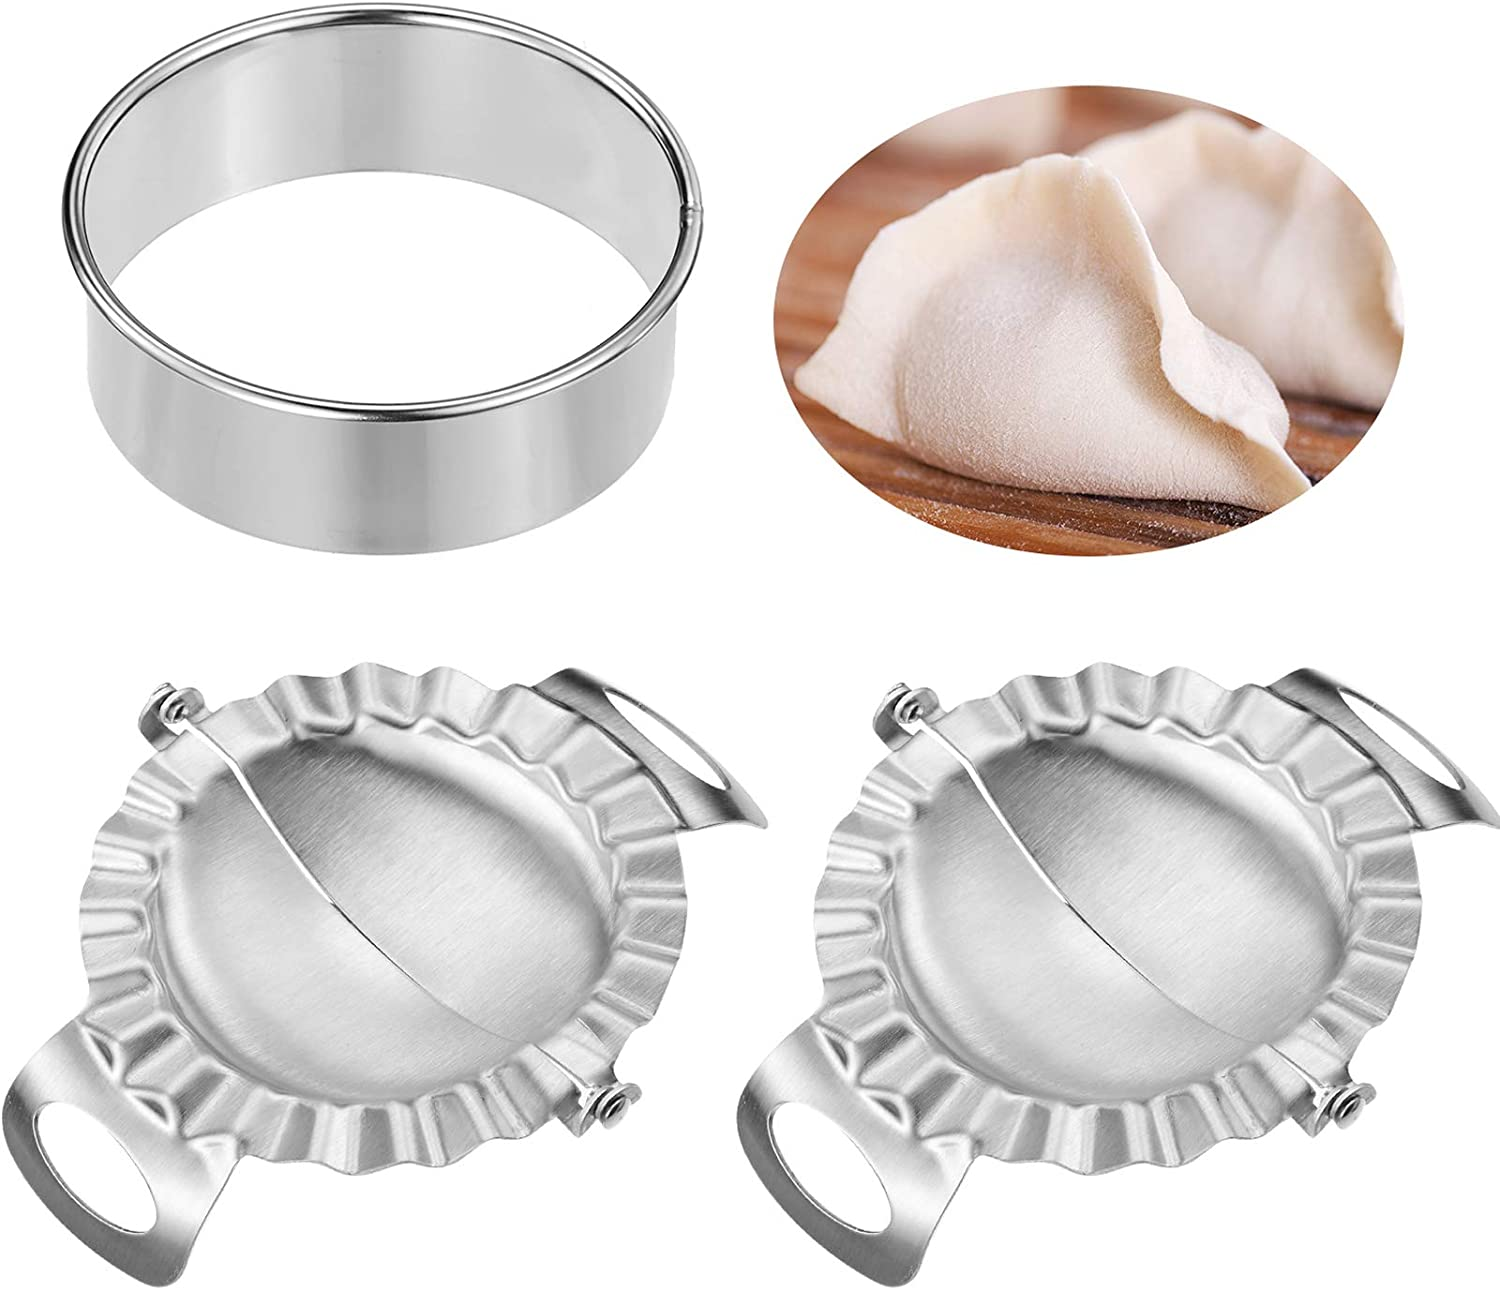 2 Pieces Dumplings Maker Stainless A surprise price is realized Molds Dum Very popular Dumpling Steel with